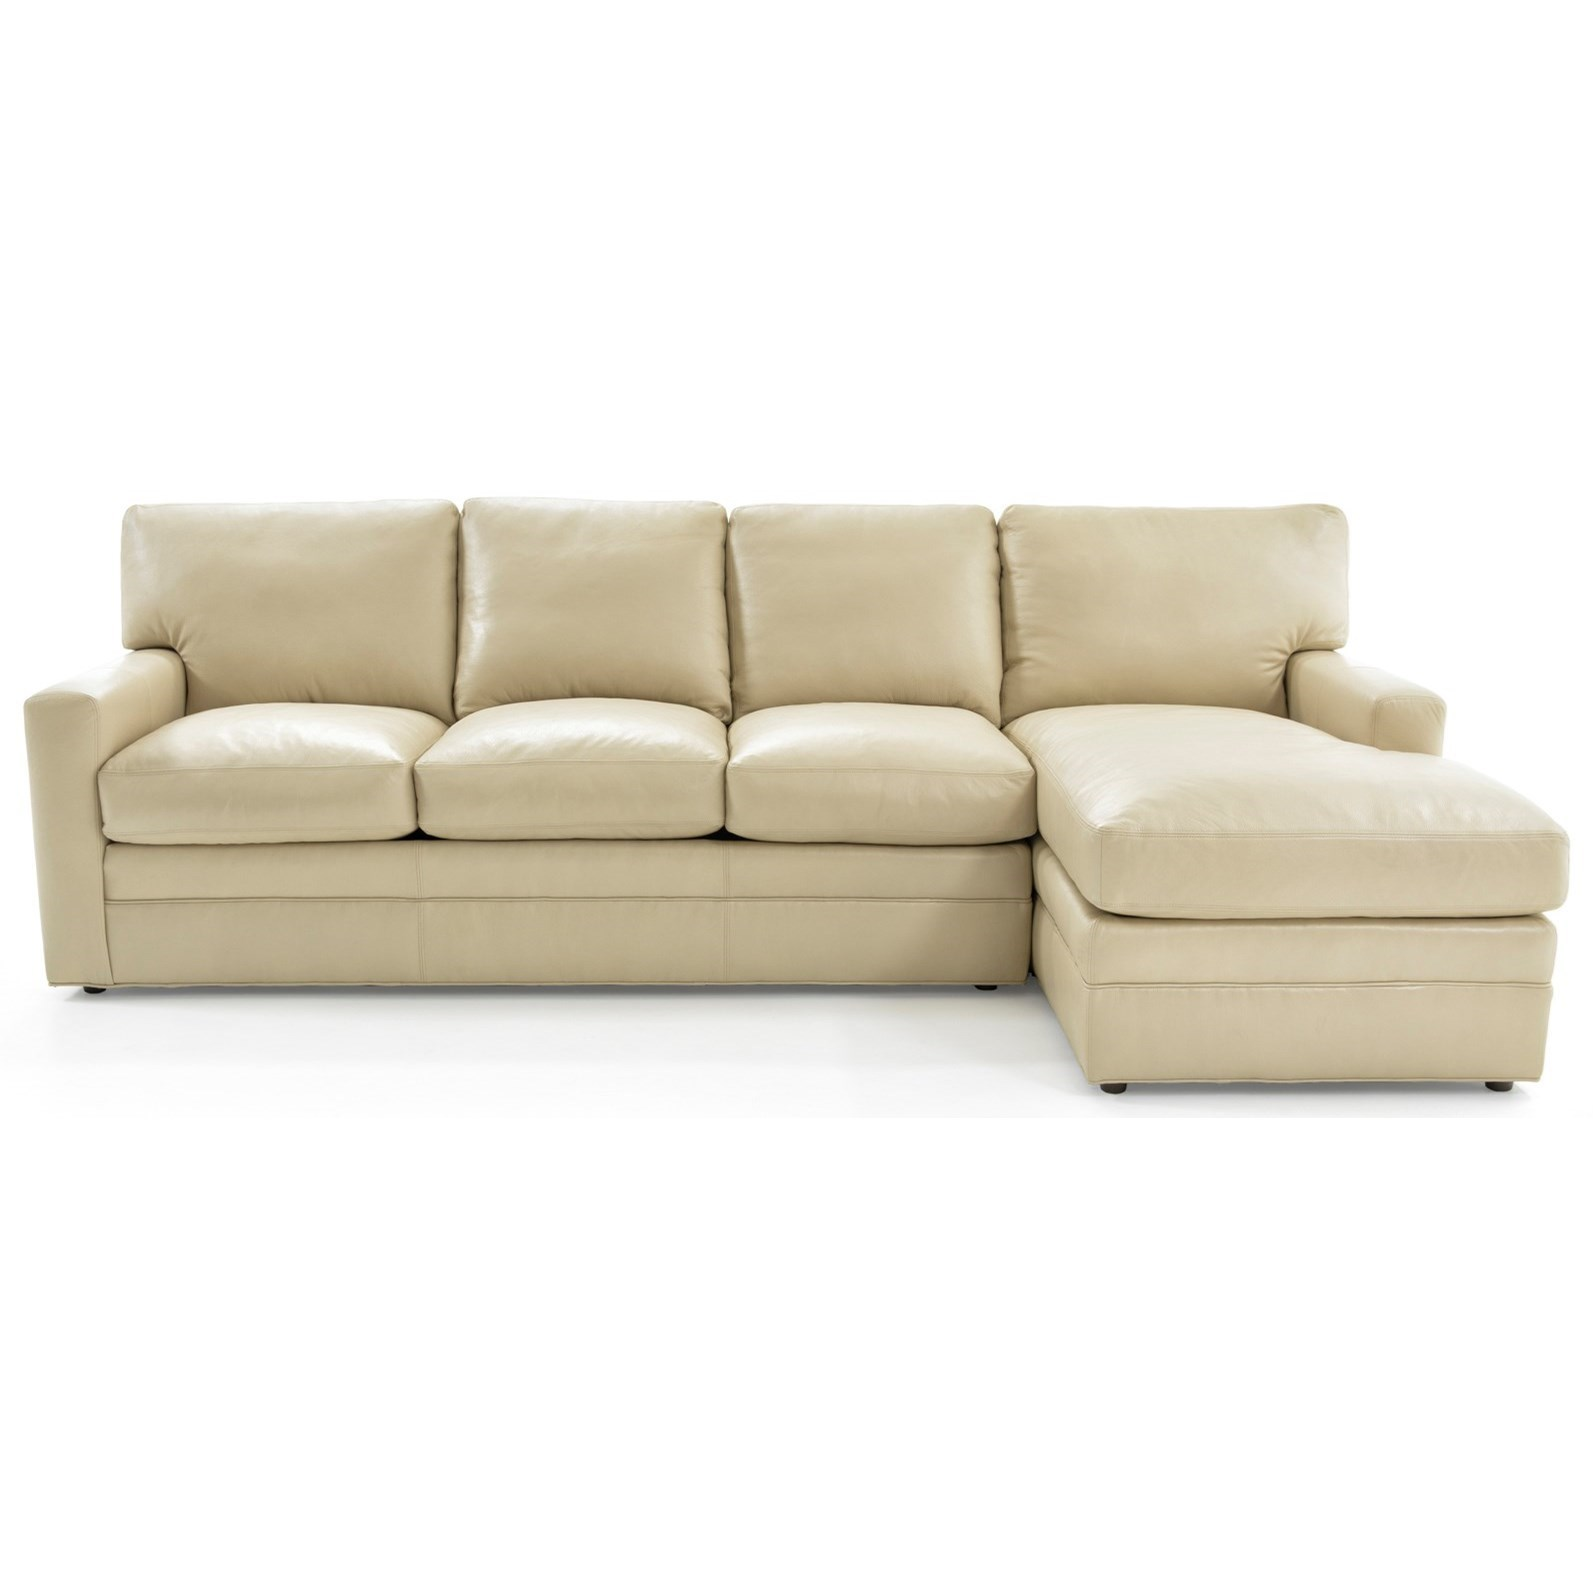 Merveilleux Whittemore Sherrill 4422 Pc L Shape Sectional Sofa W/ RAF Chaise ...